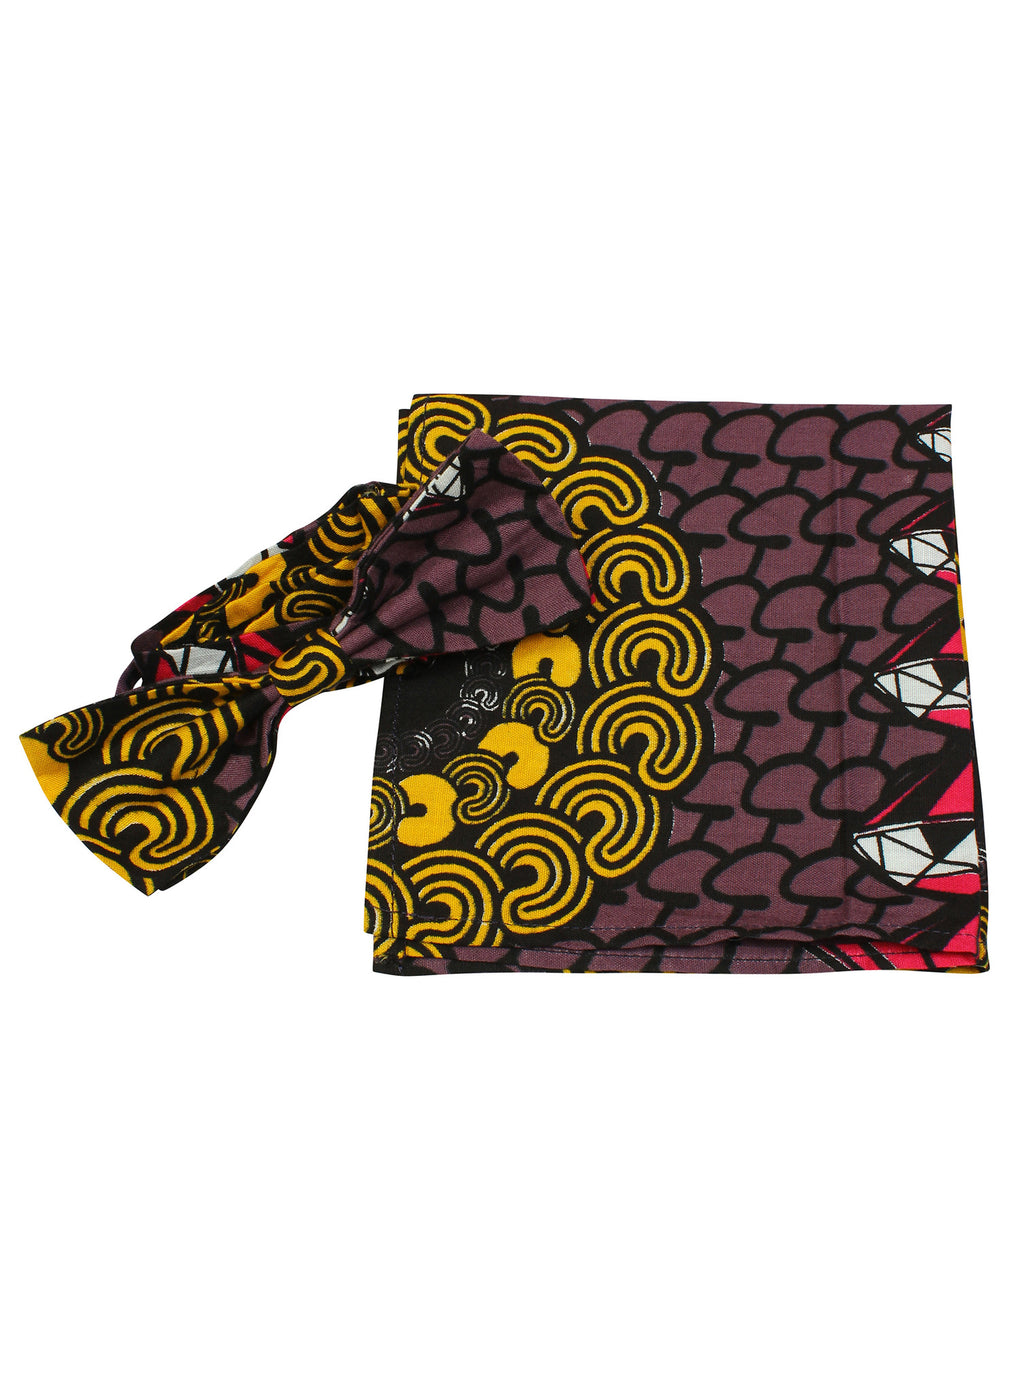 Men's Bow Tie & Pocket Square-Di - OHEMA OHENE AFRICAN INSPIRED FASHION  - 1